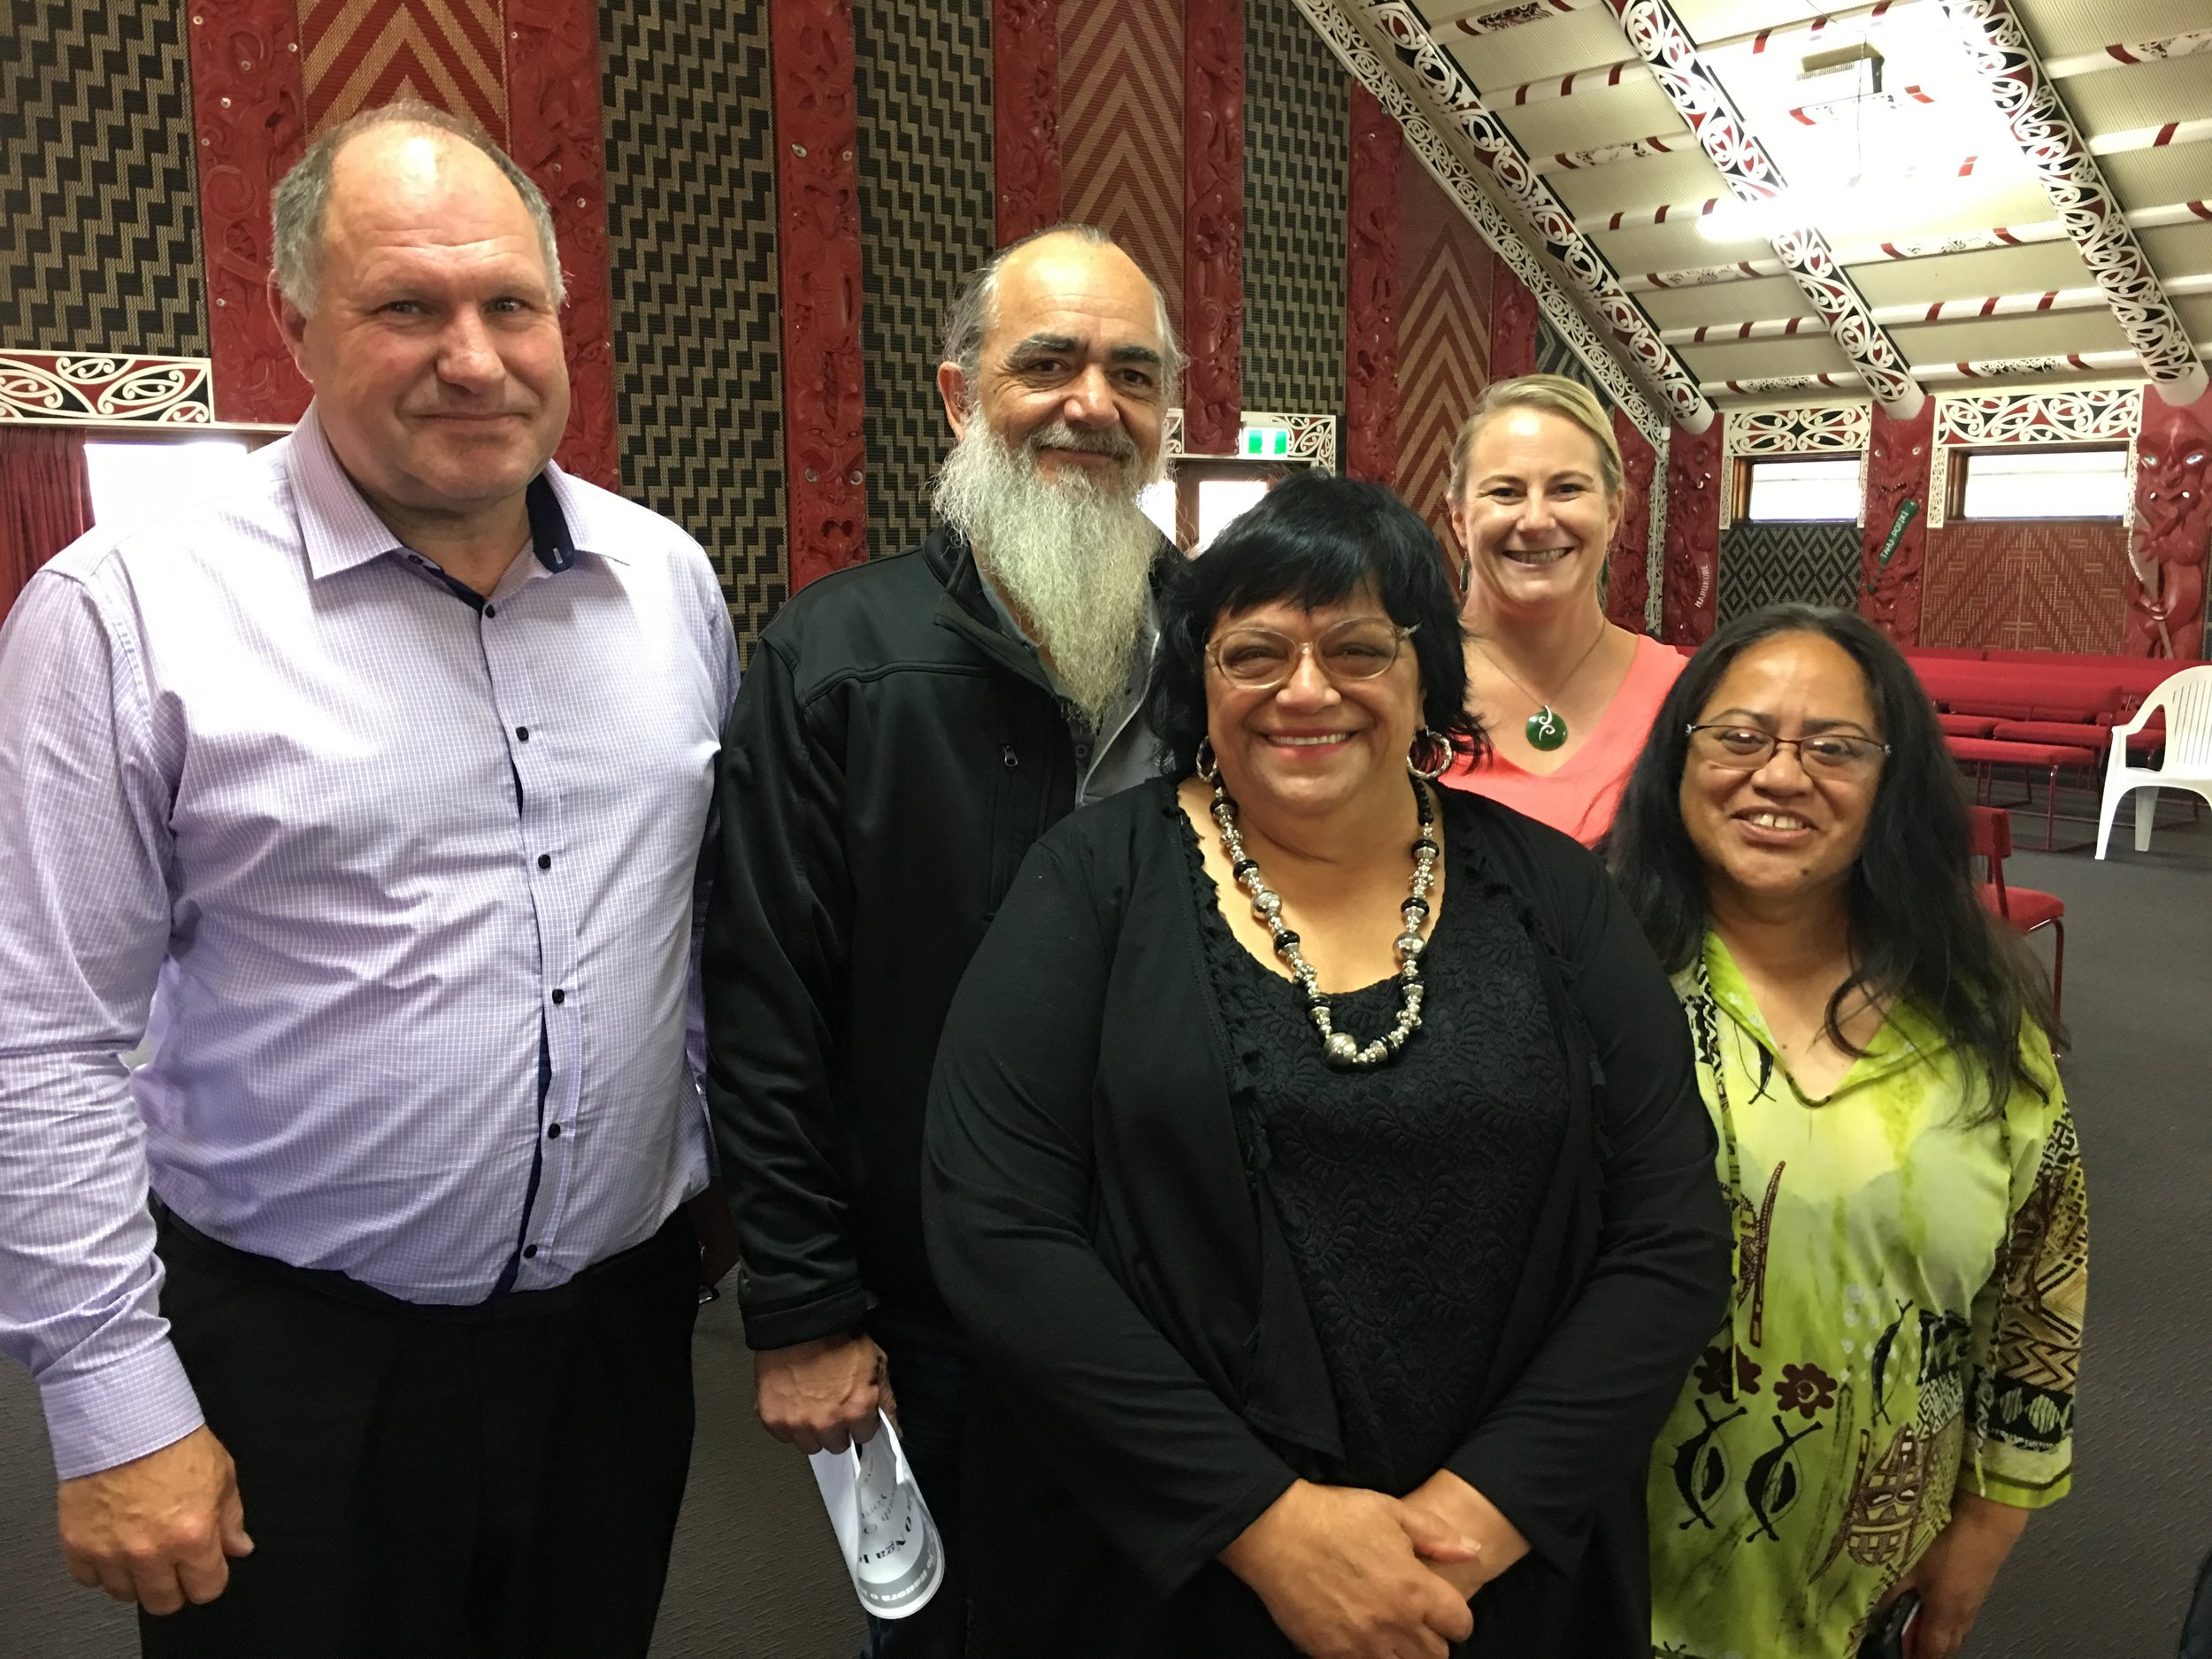 David Cairns (Pegasus Health); Stephen Trent and Dr Melissa Cragg (Ngati Rarua Hauora) with Koka Alamein and Maire Kipa